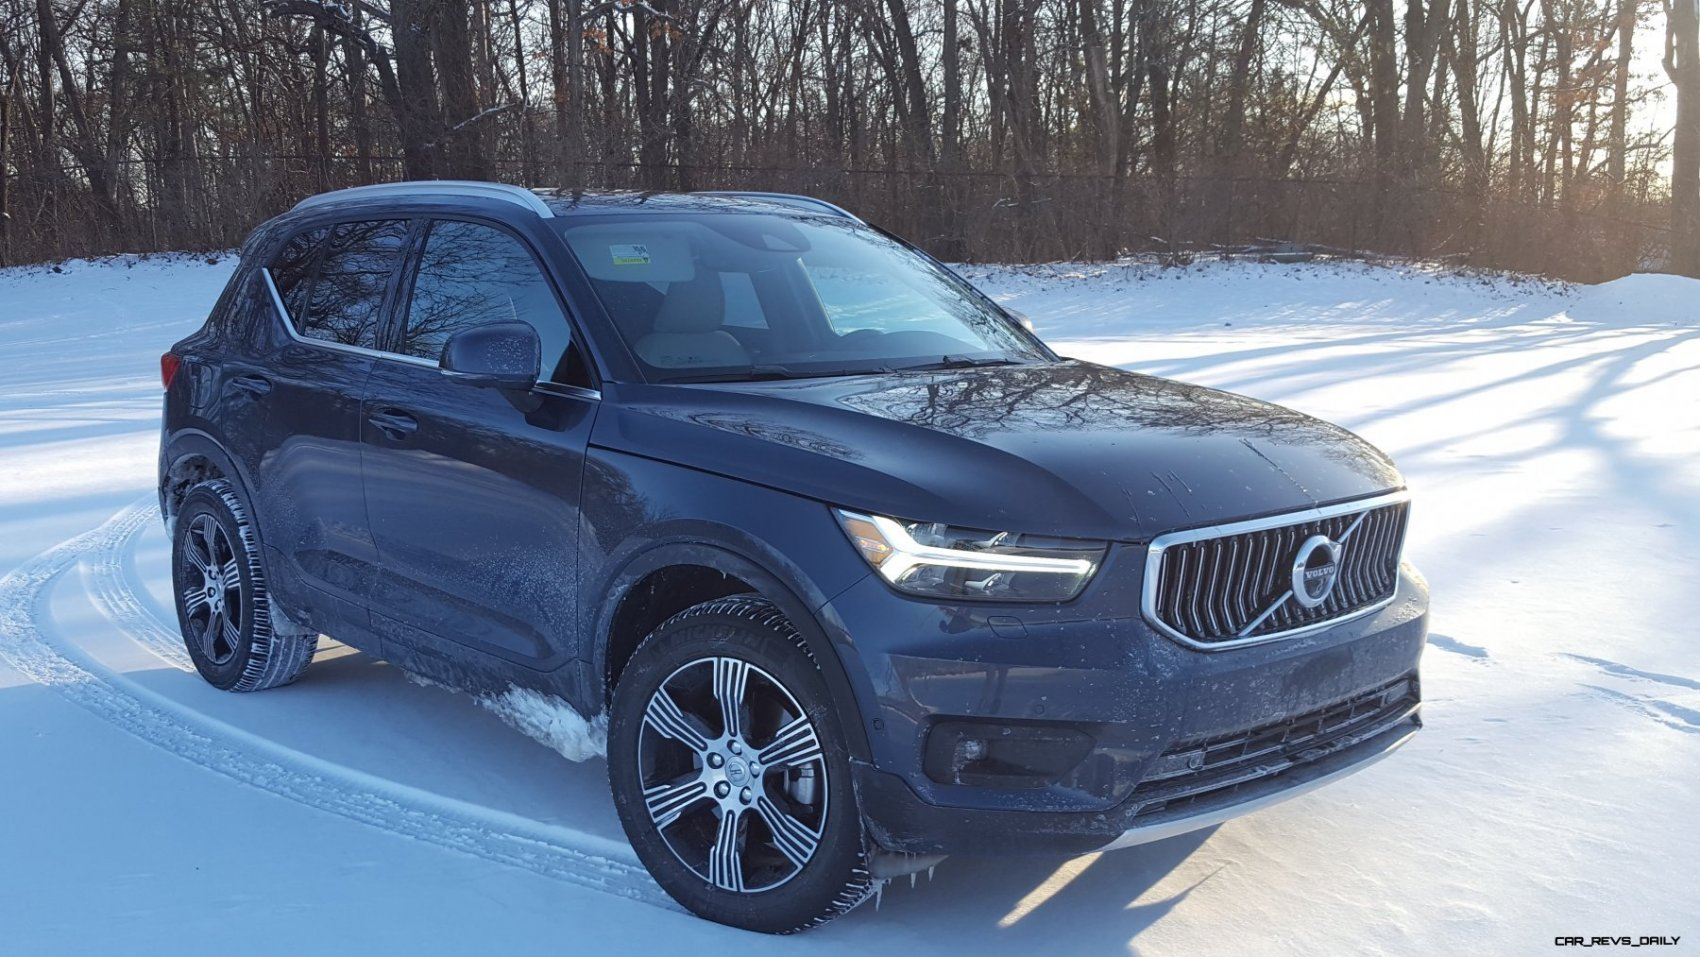 Road Test Review - 2019 Volvo XC40 T5 AWD Inscription - By Carl